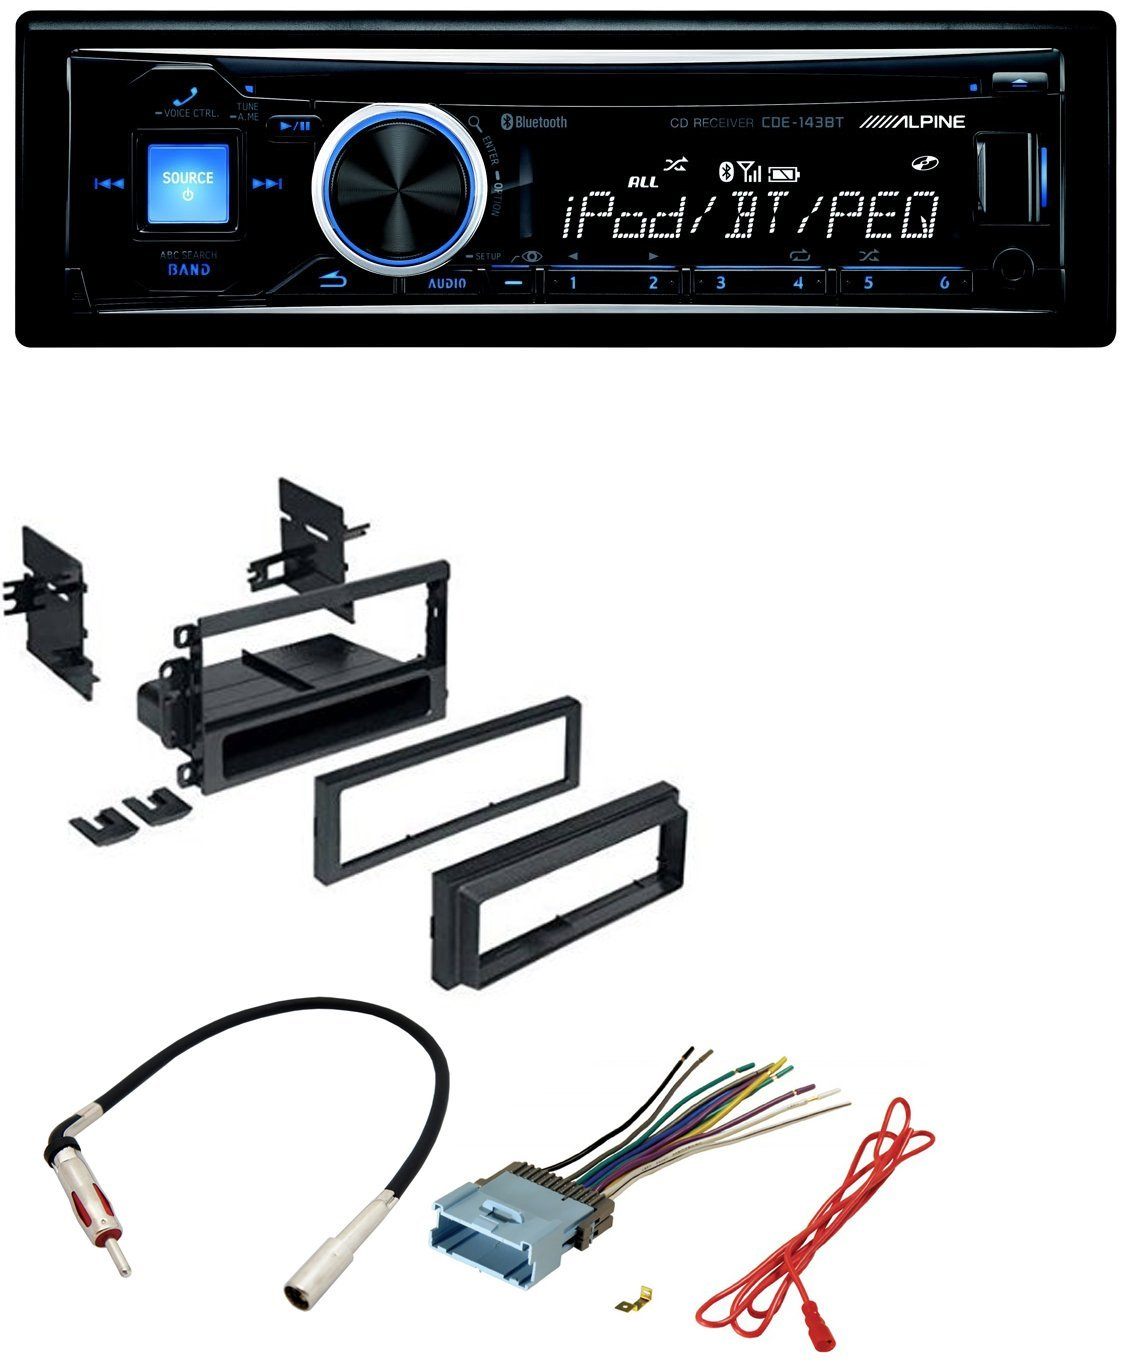 hight resolution of get quotations car radio stereo dash kit harness antenna for gm gmc chevy cadillac pontiac with alpine cd